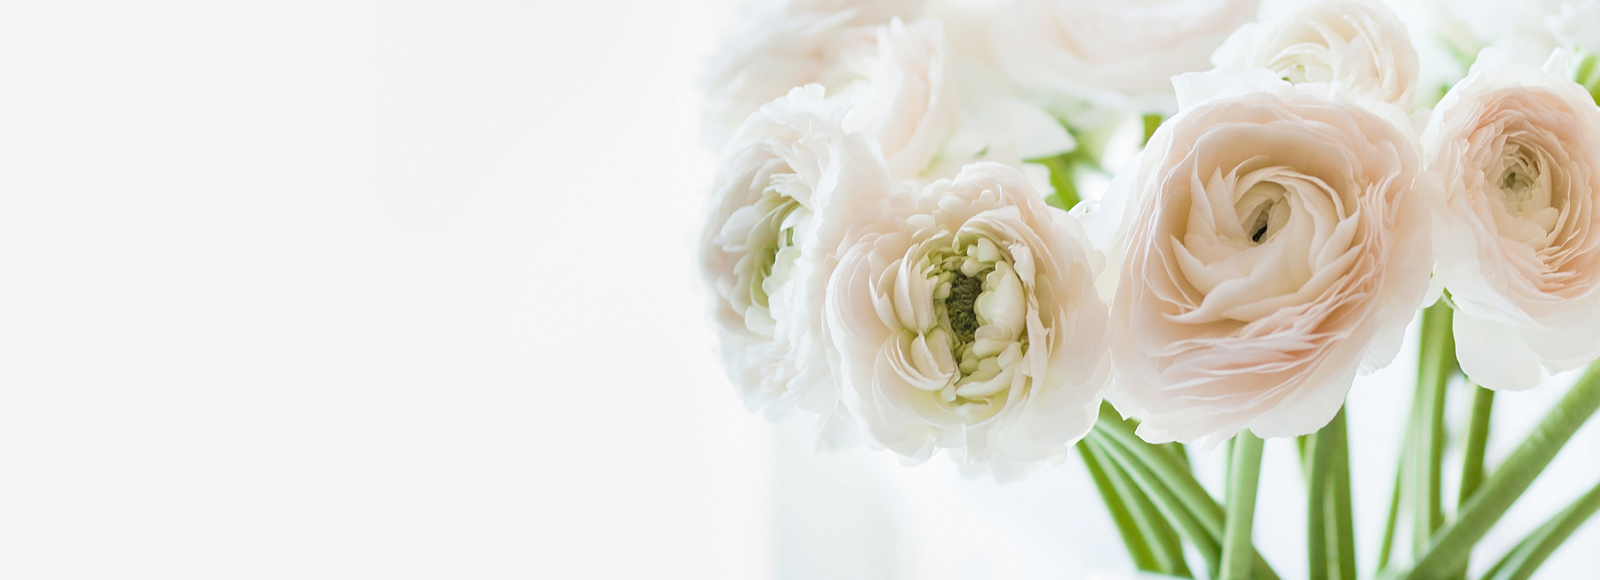 Close up of white flowers on left side with white space on right